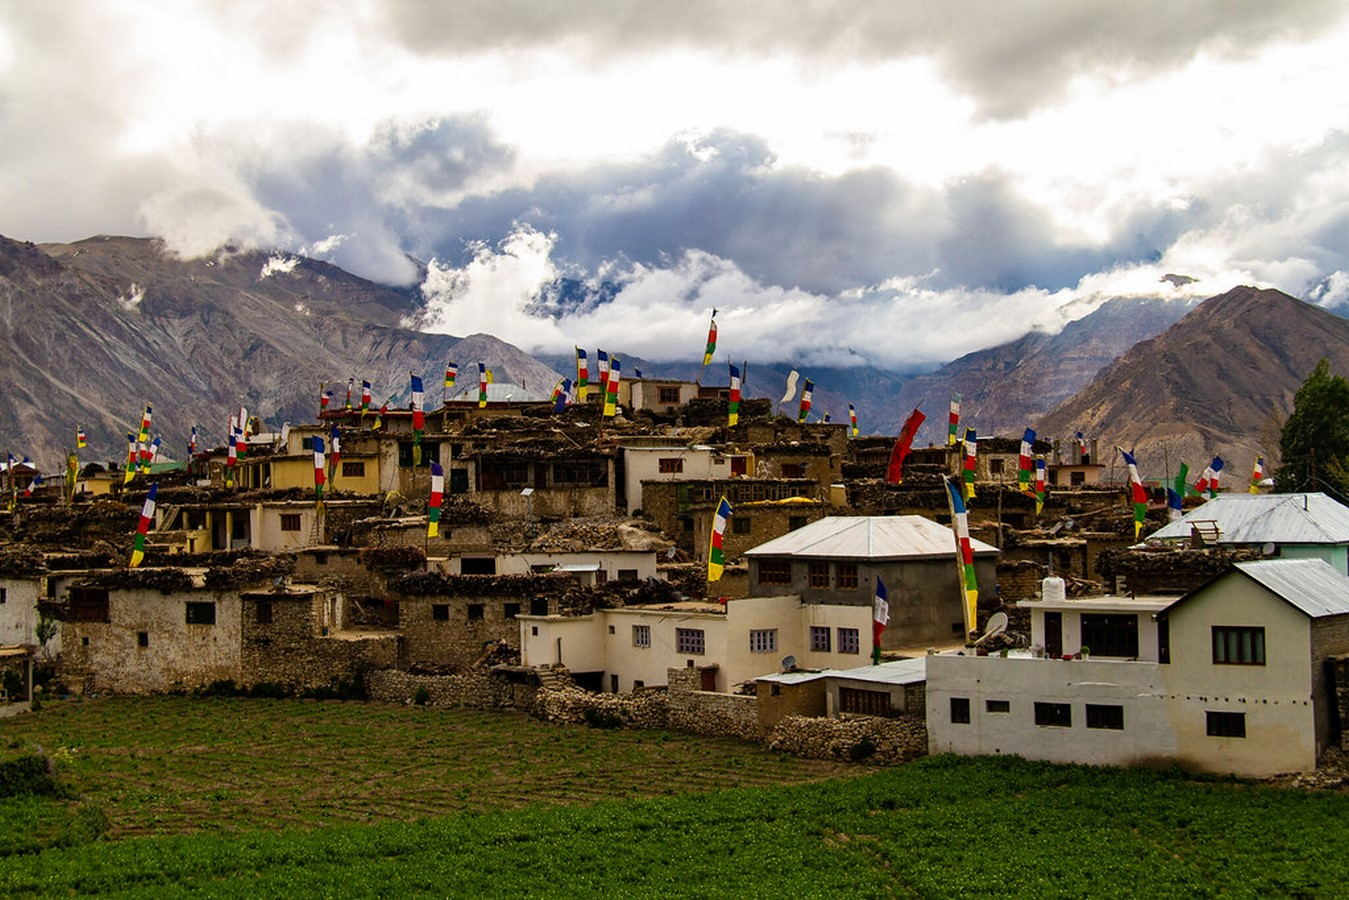 The Nako Valley Research and Conservation: The Monastery of Lotsawa Lhakhang - Sheet1